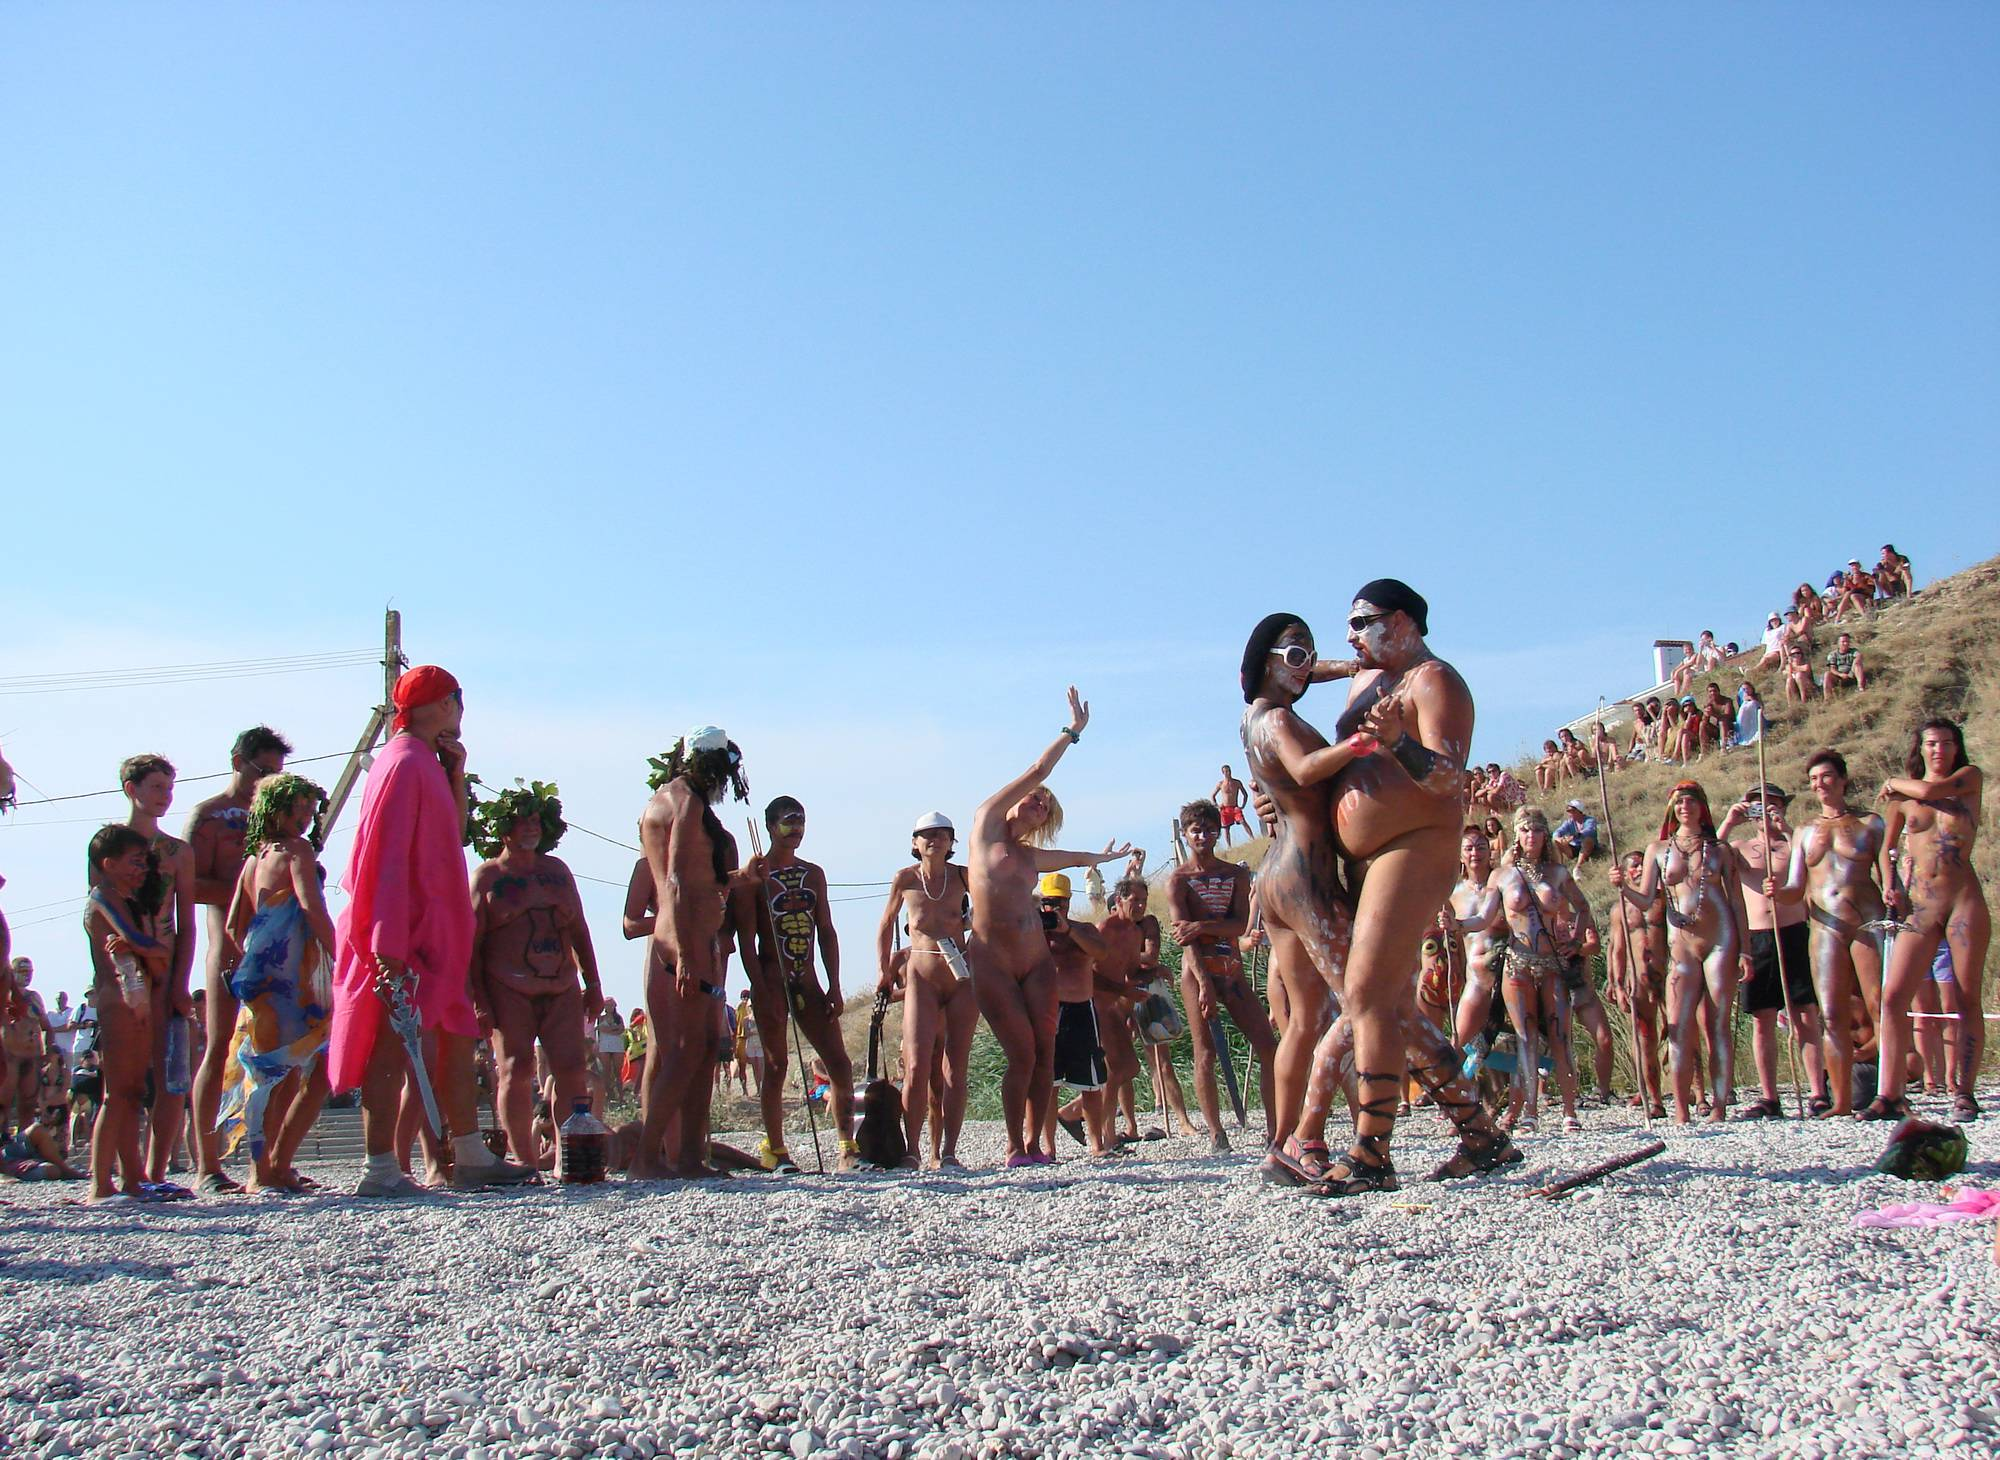 Nudist Pictures Neptune Day Dance Views - 2